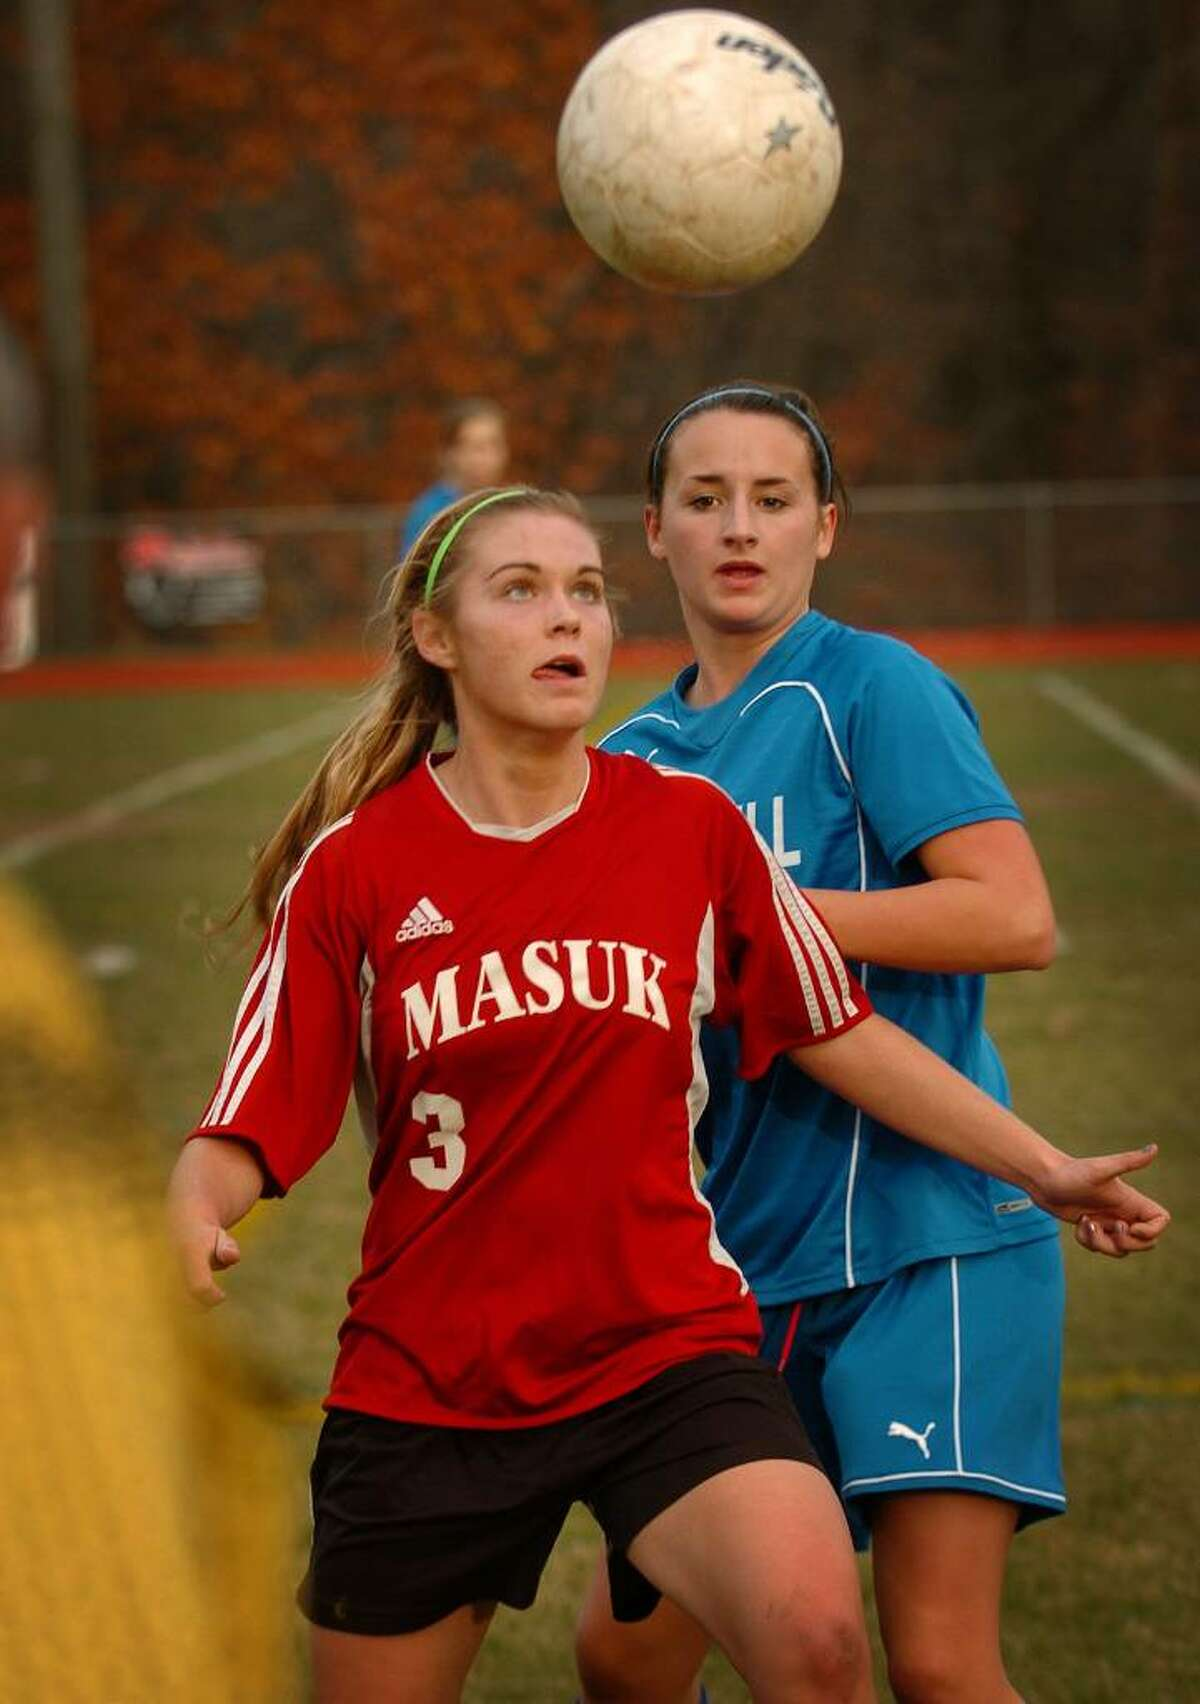 Masuk's Collen Coubren eyes the ball in front of Bunnell defender Megan Murphy during Monday's matchup in the opening round of the Class L state playoffs at Masuk High School in Monroe.